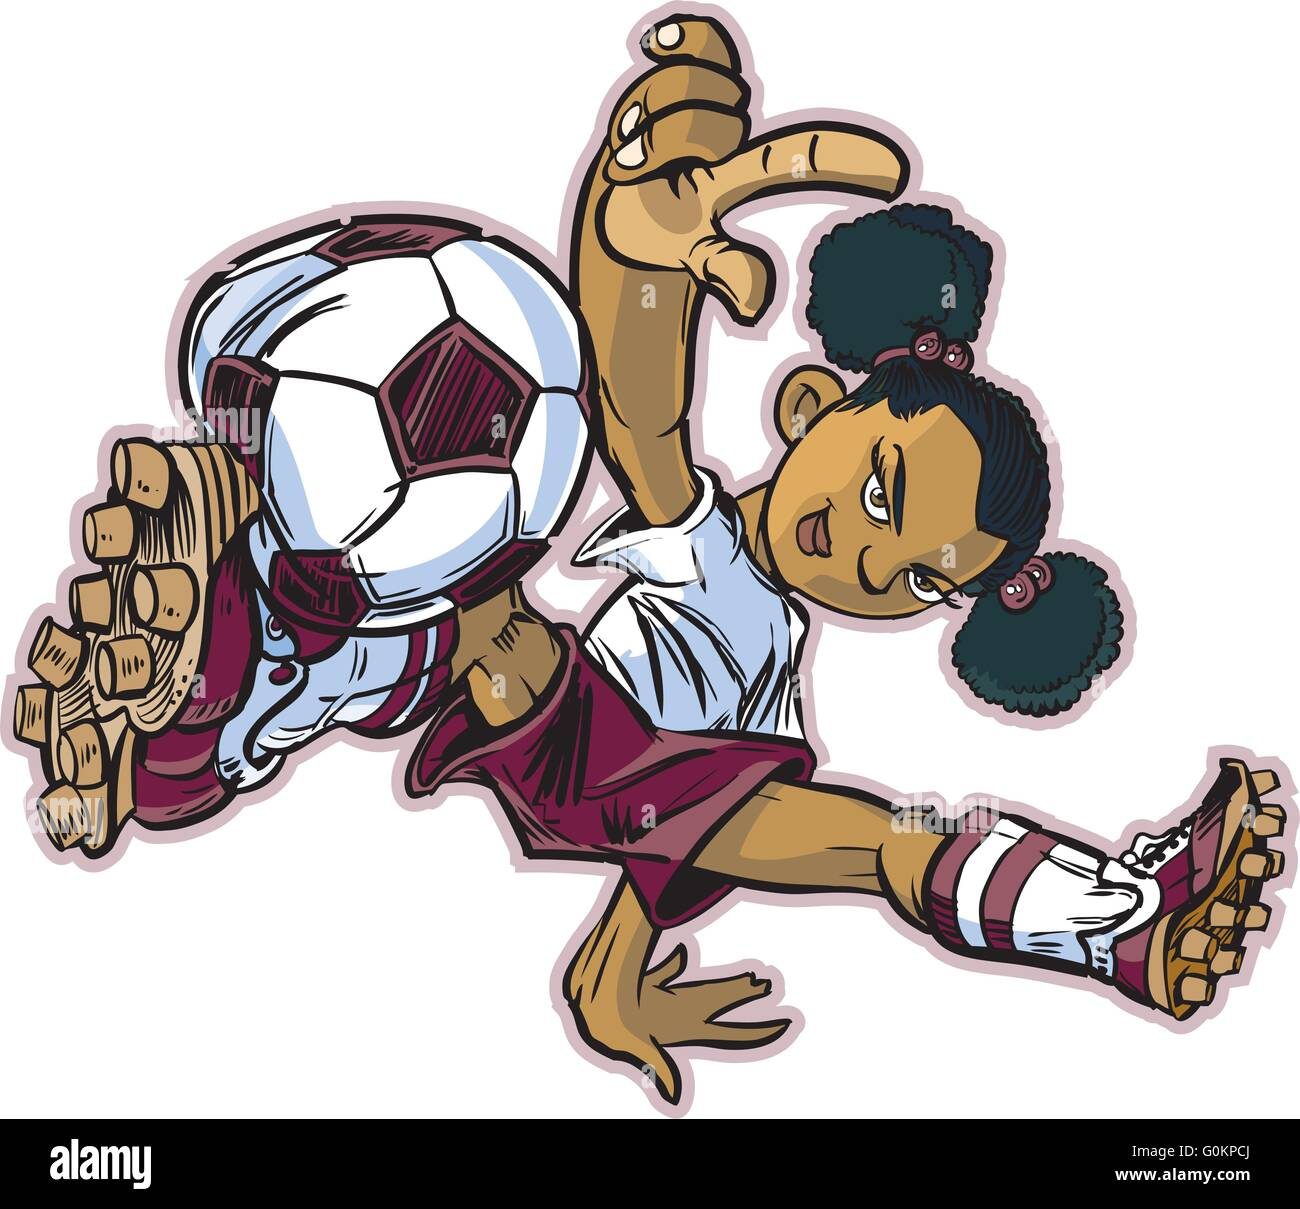 cartoon female soccer player kicking stock photos cartoon female